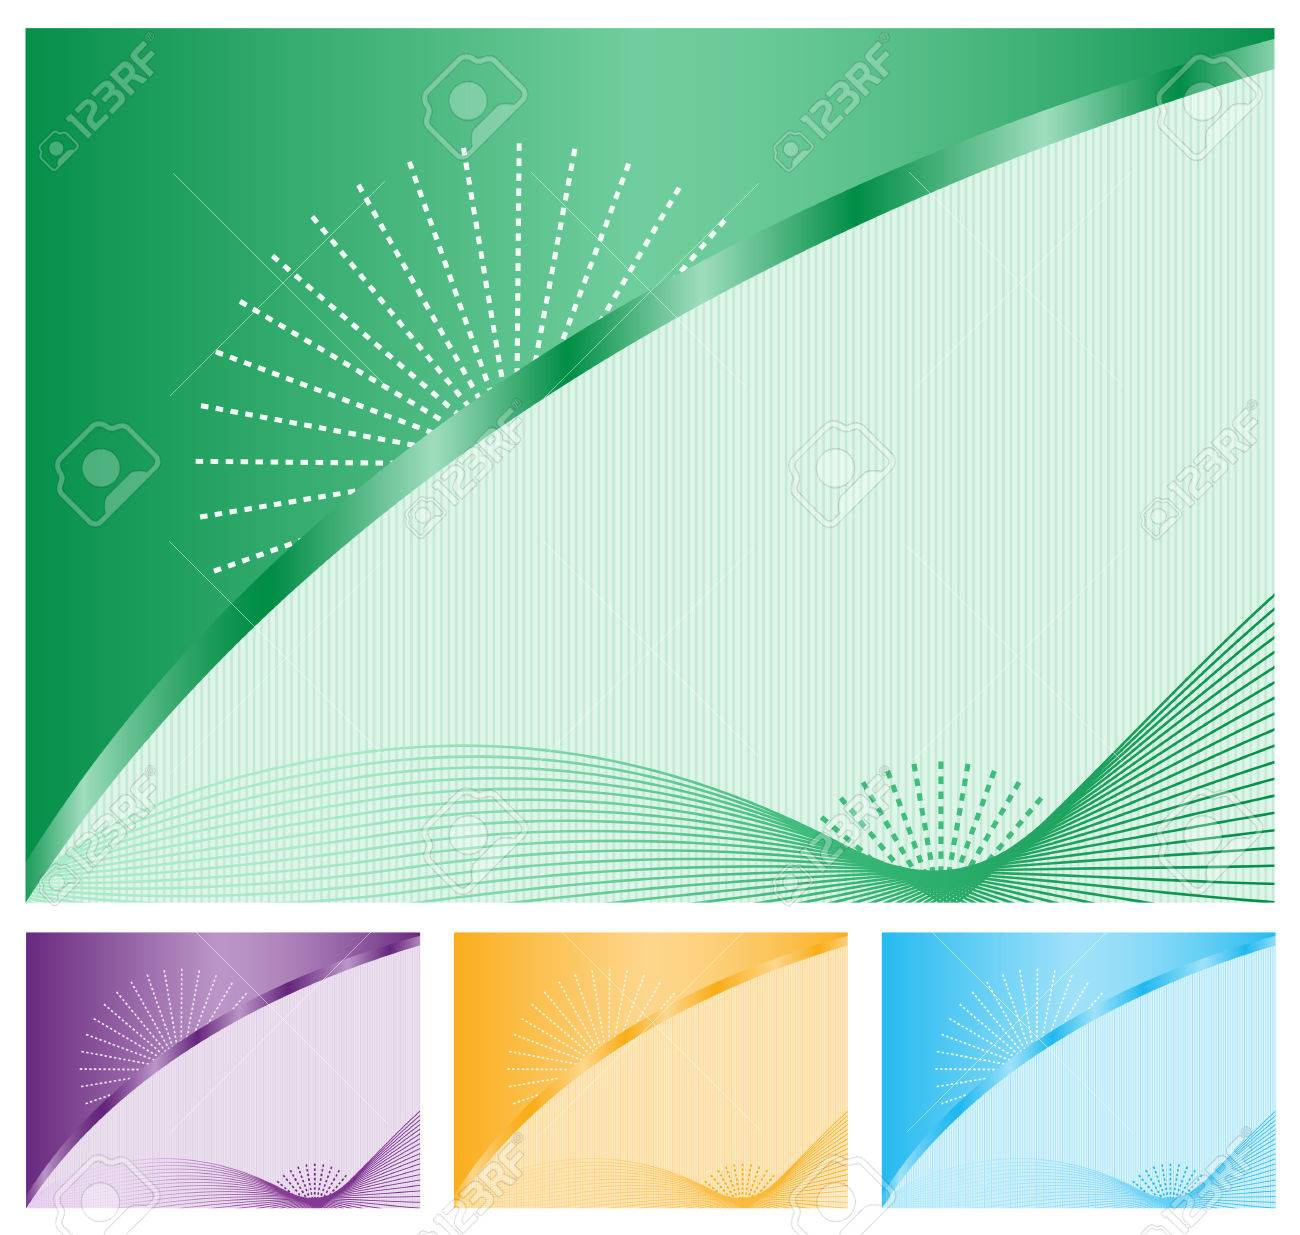 Abstract backgrounds with decorative elegant wavy lines, sunbursts, subtle striped background and copy space to add text. Choice of 4 colors. Stock Vector - 7231962